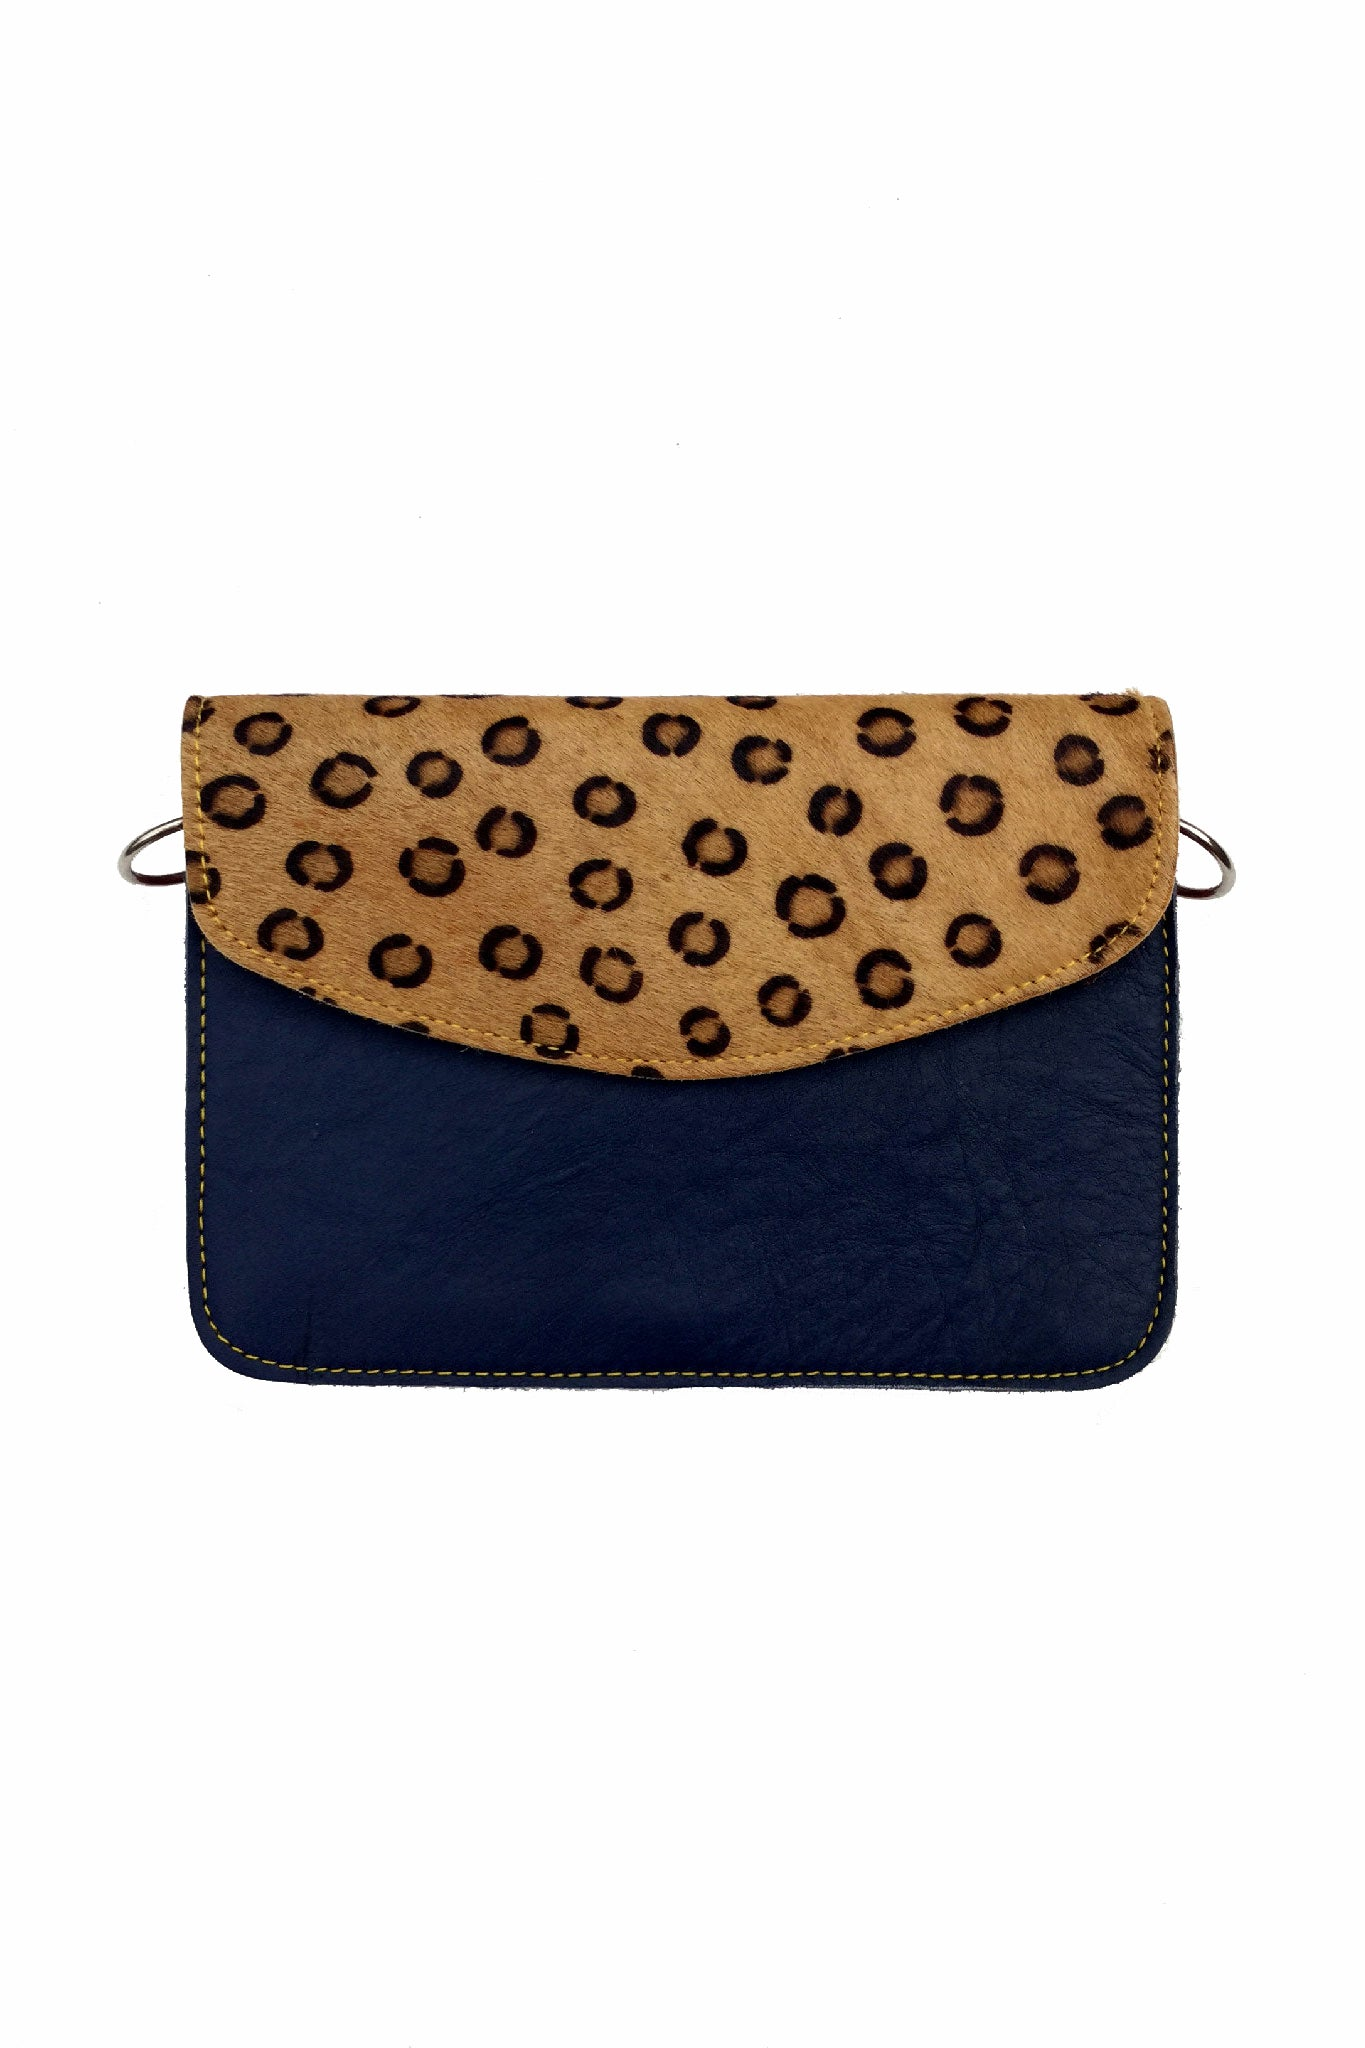 Sketch London animal print envelope leather bag cross body upcycled ethical sustainable women dark blue leopard print